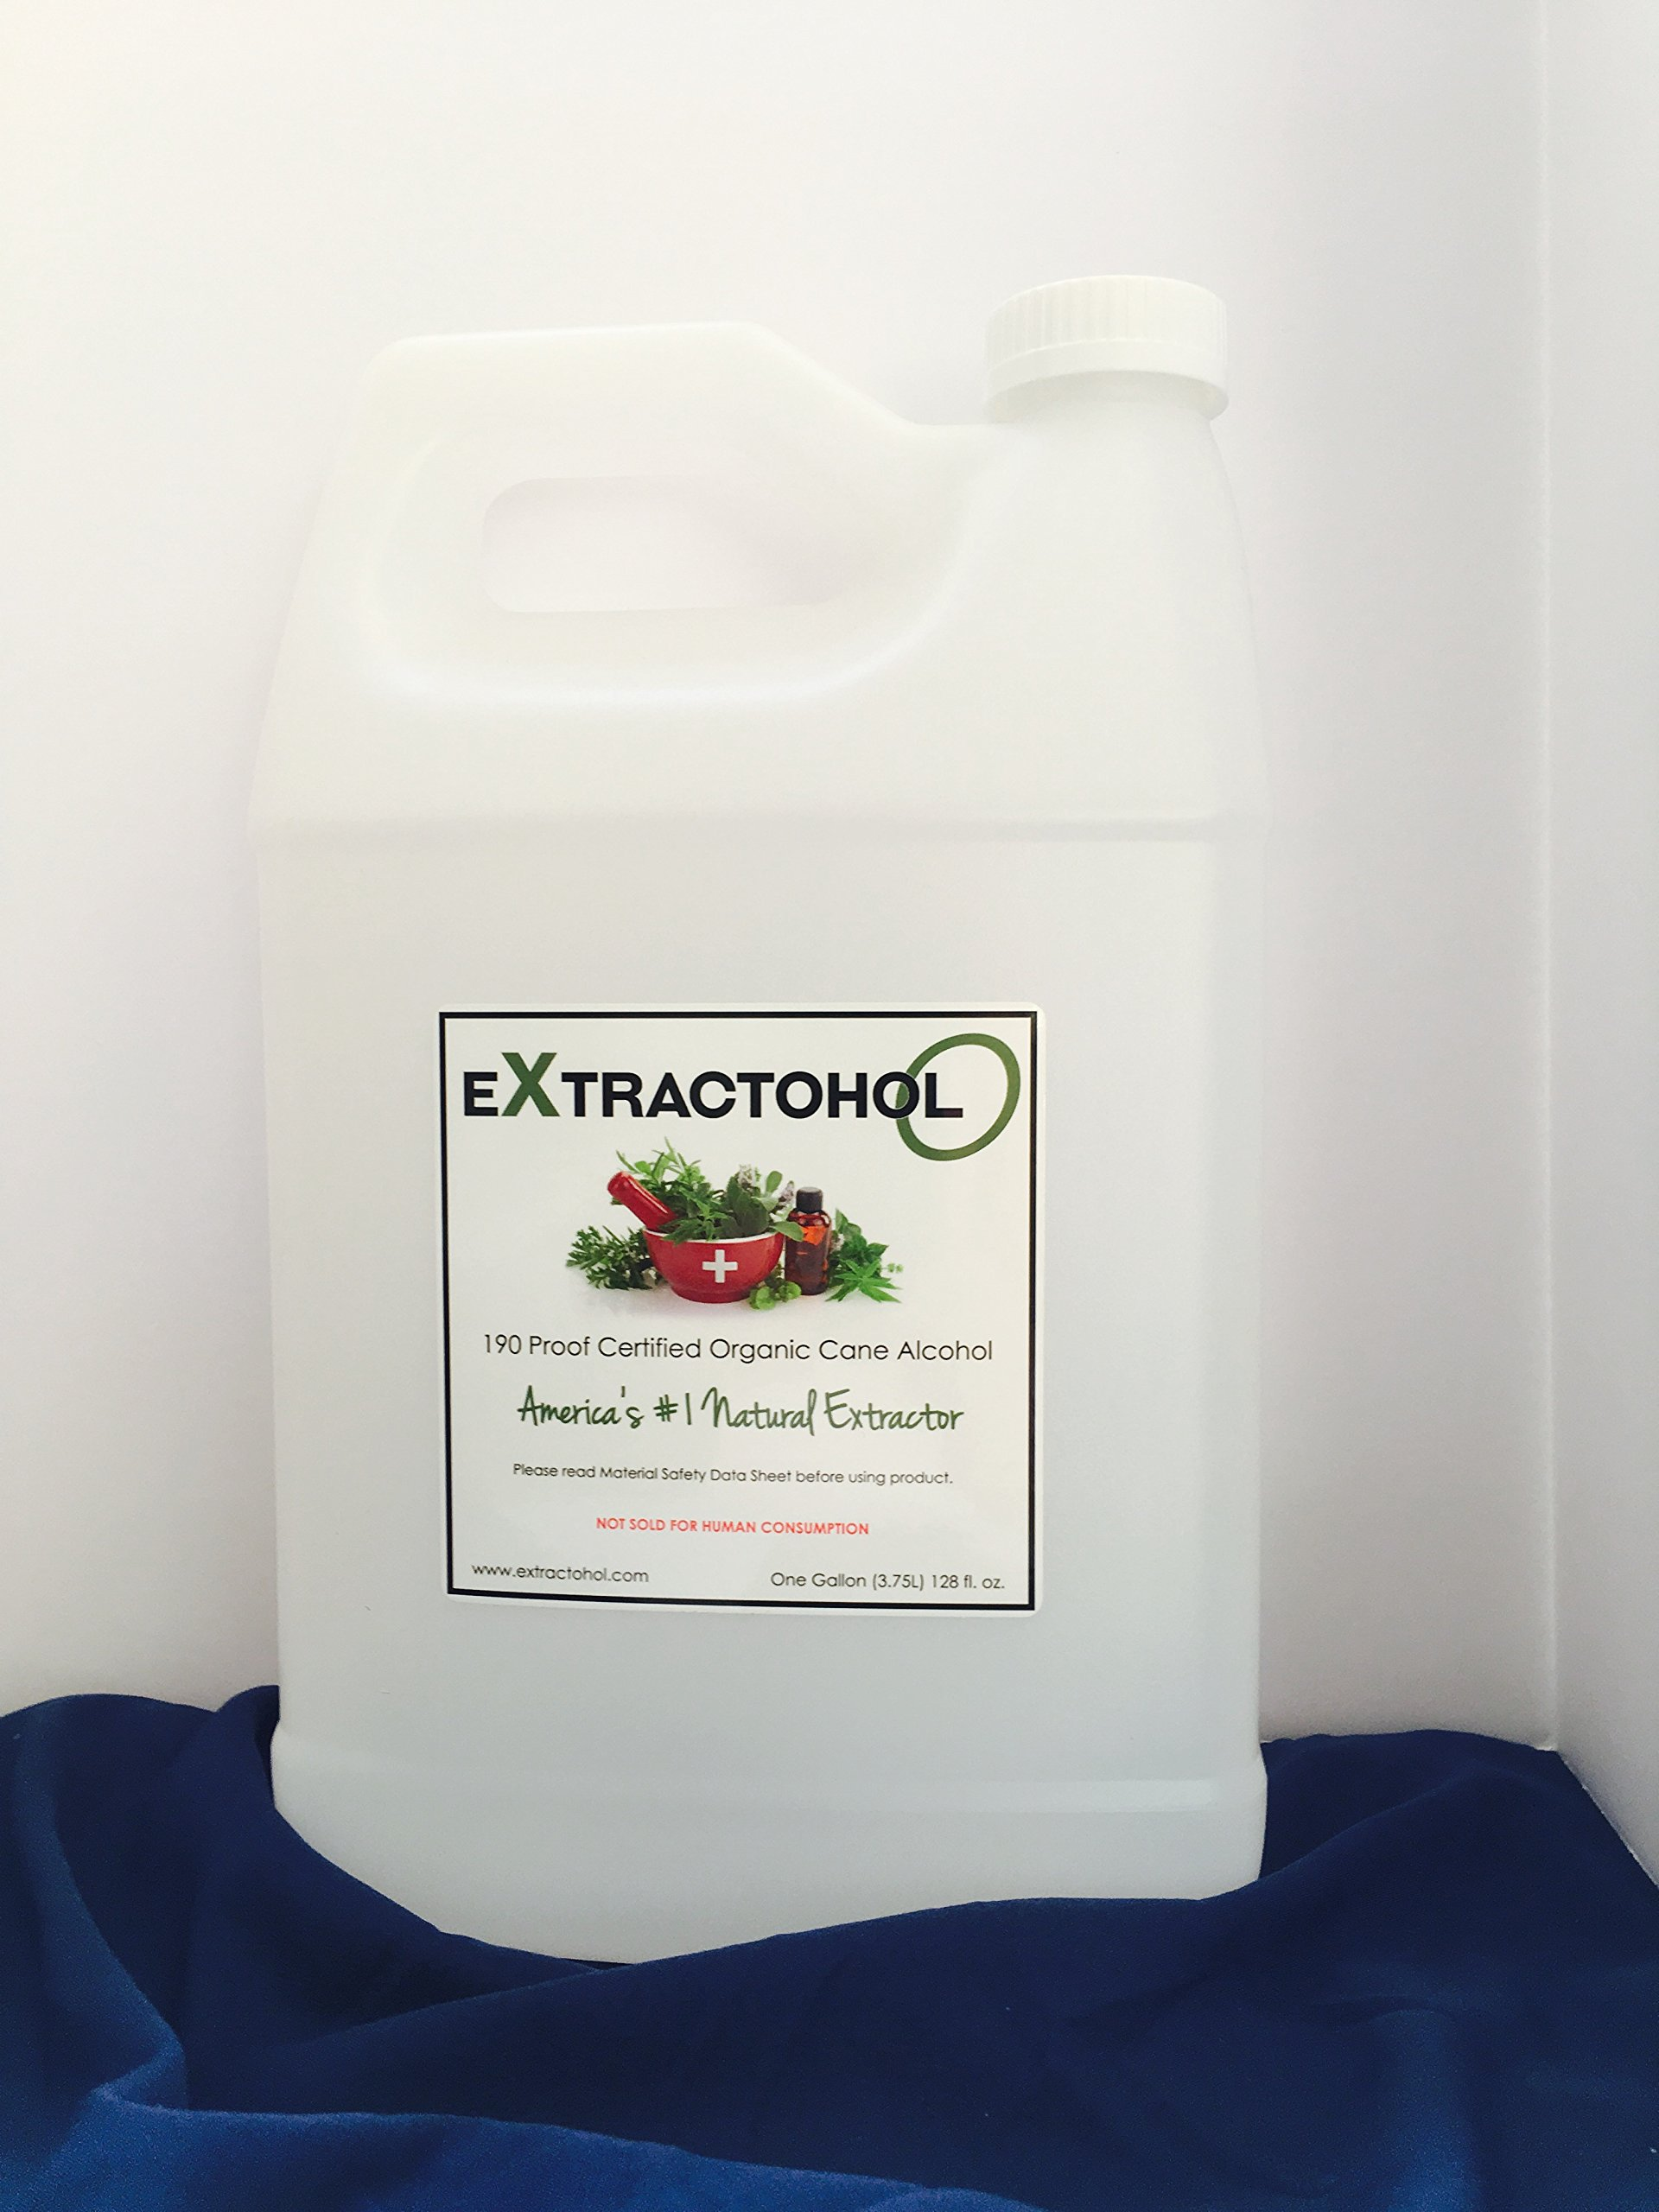 Extractohol-Organic USP Certified 190 Proof Cane (+ 8 oz extra - Free, added to Gallon!) by Tesla Scientific